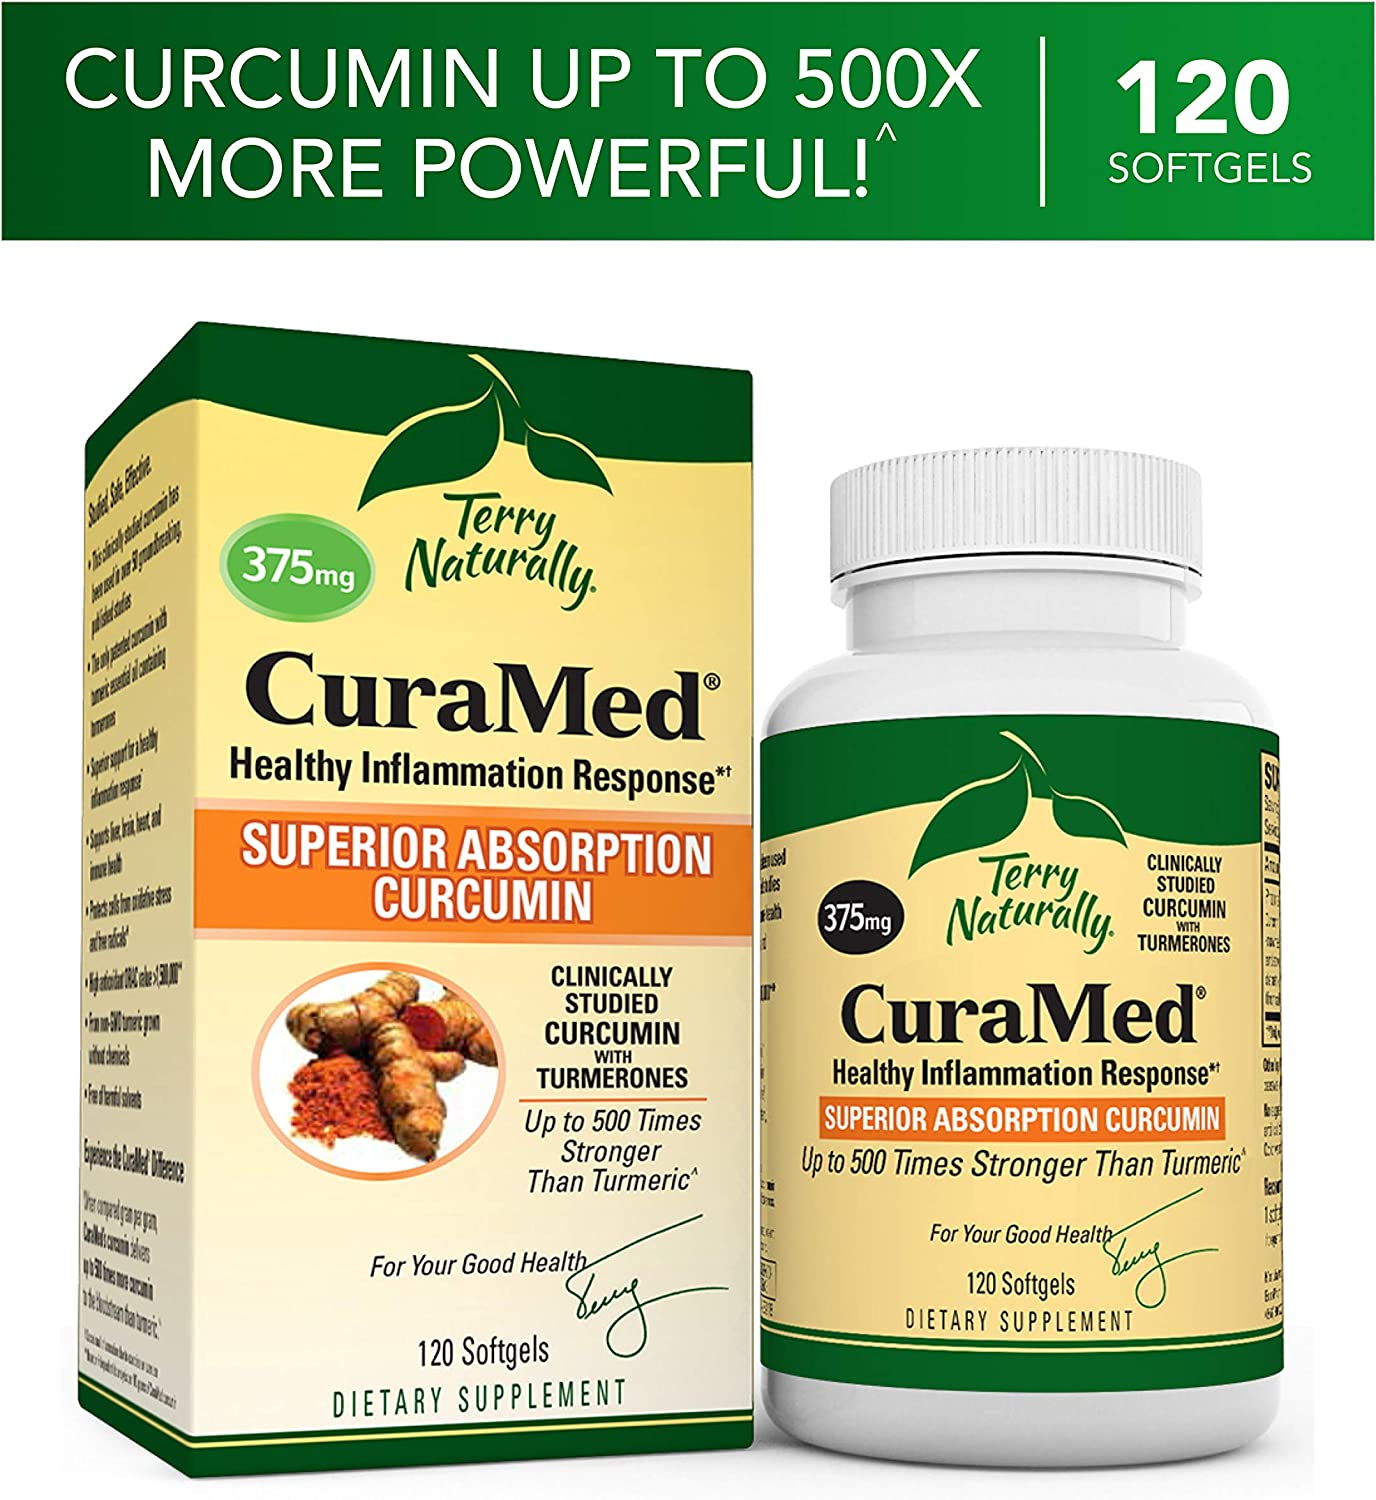 Terry Naturally CuraMed 375 mg – 120 Softgels – Superior Absorption BCM-95 Curcumin Supplement, Promotes Healthy Inflammation Response – Non-GMO, Gluten-Free, Halal – 120 Servings